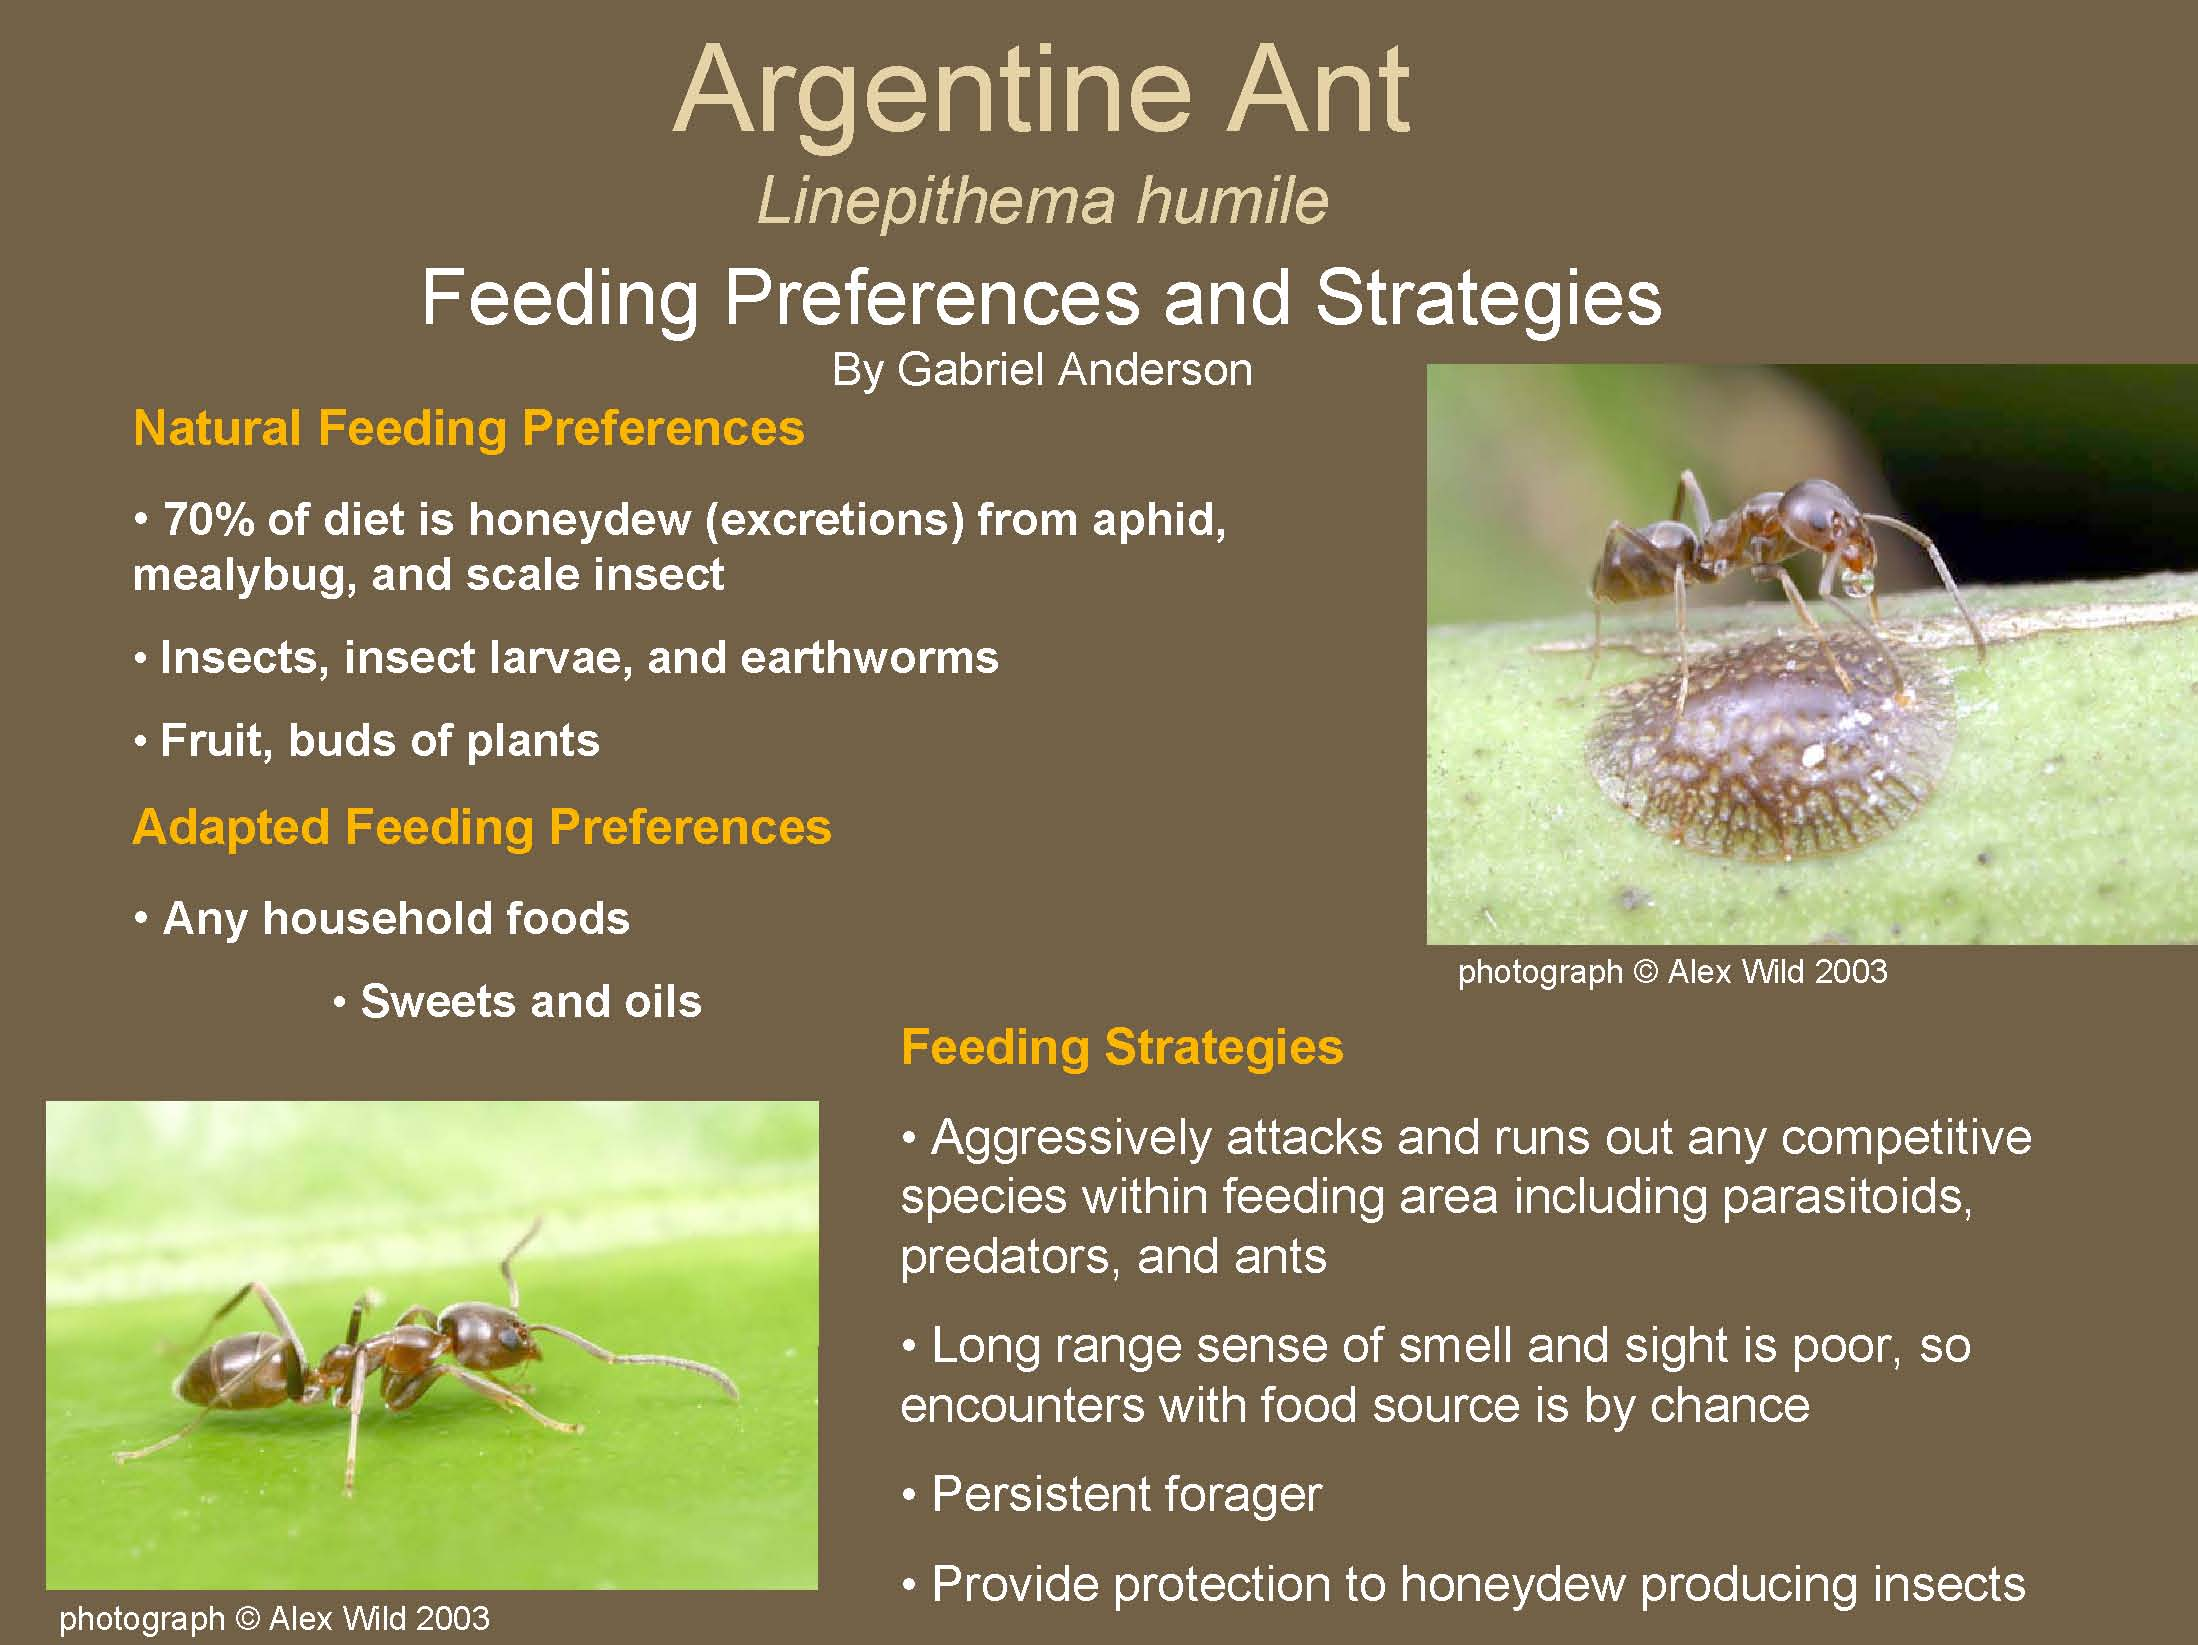 Argentine Ant: Feeding Preferences and Strategies